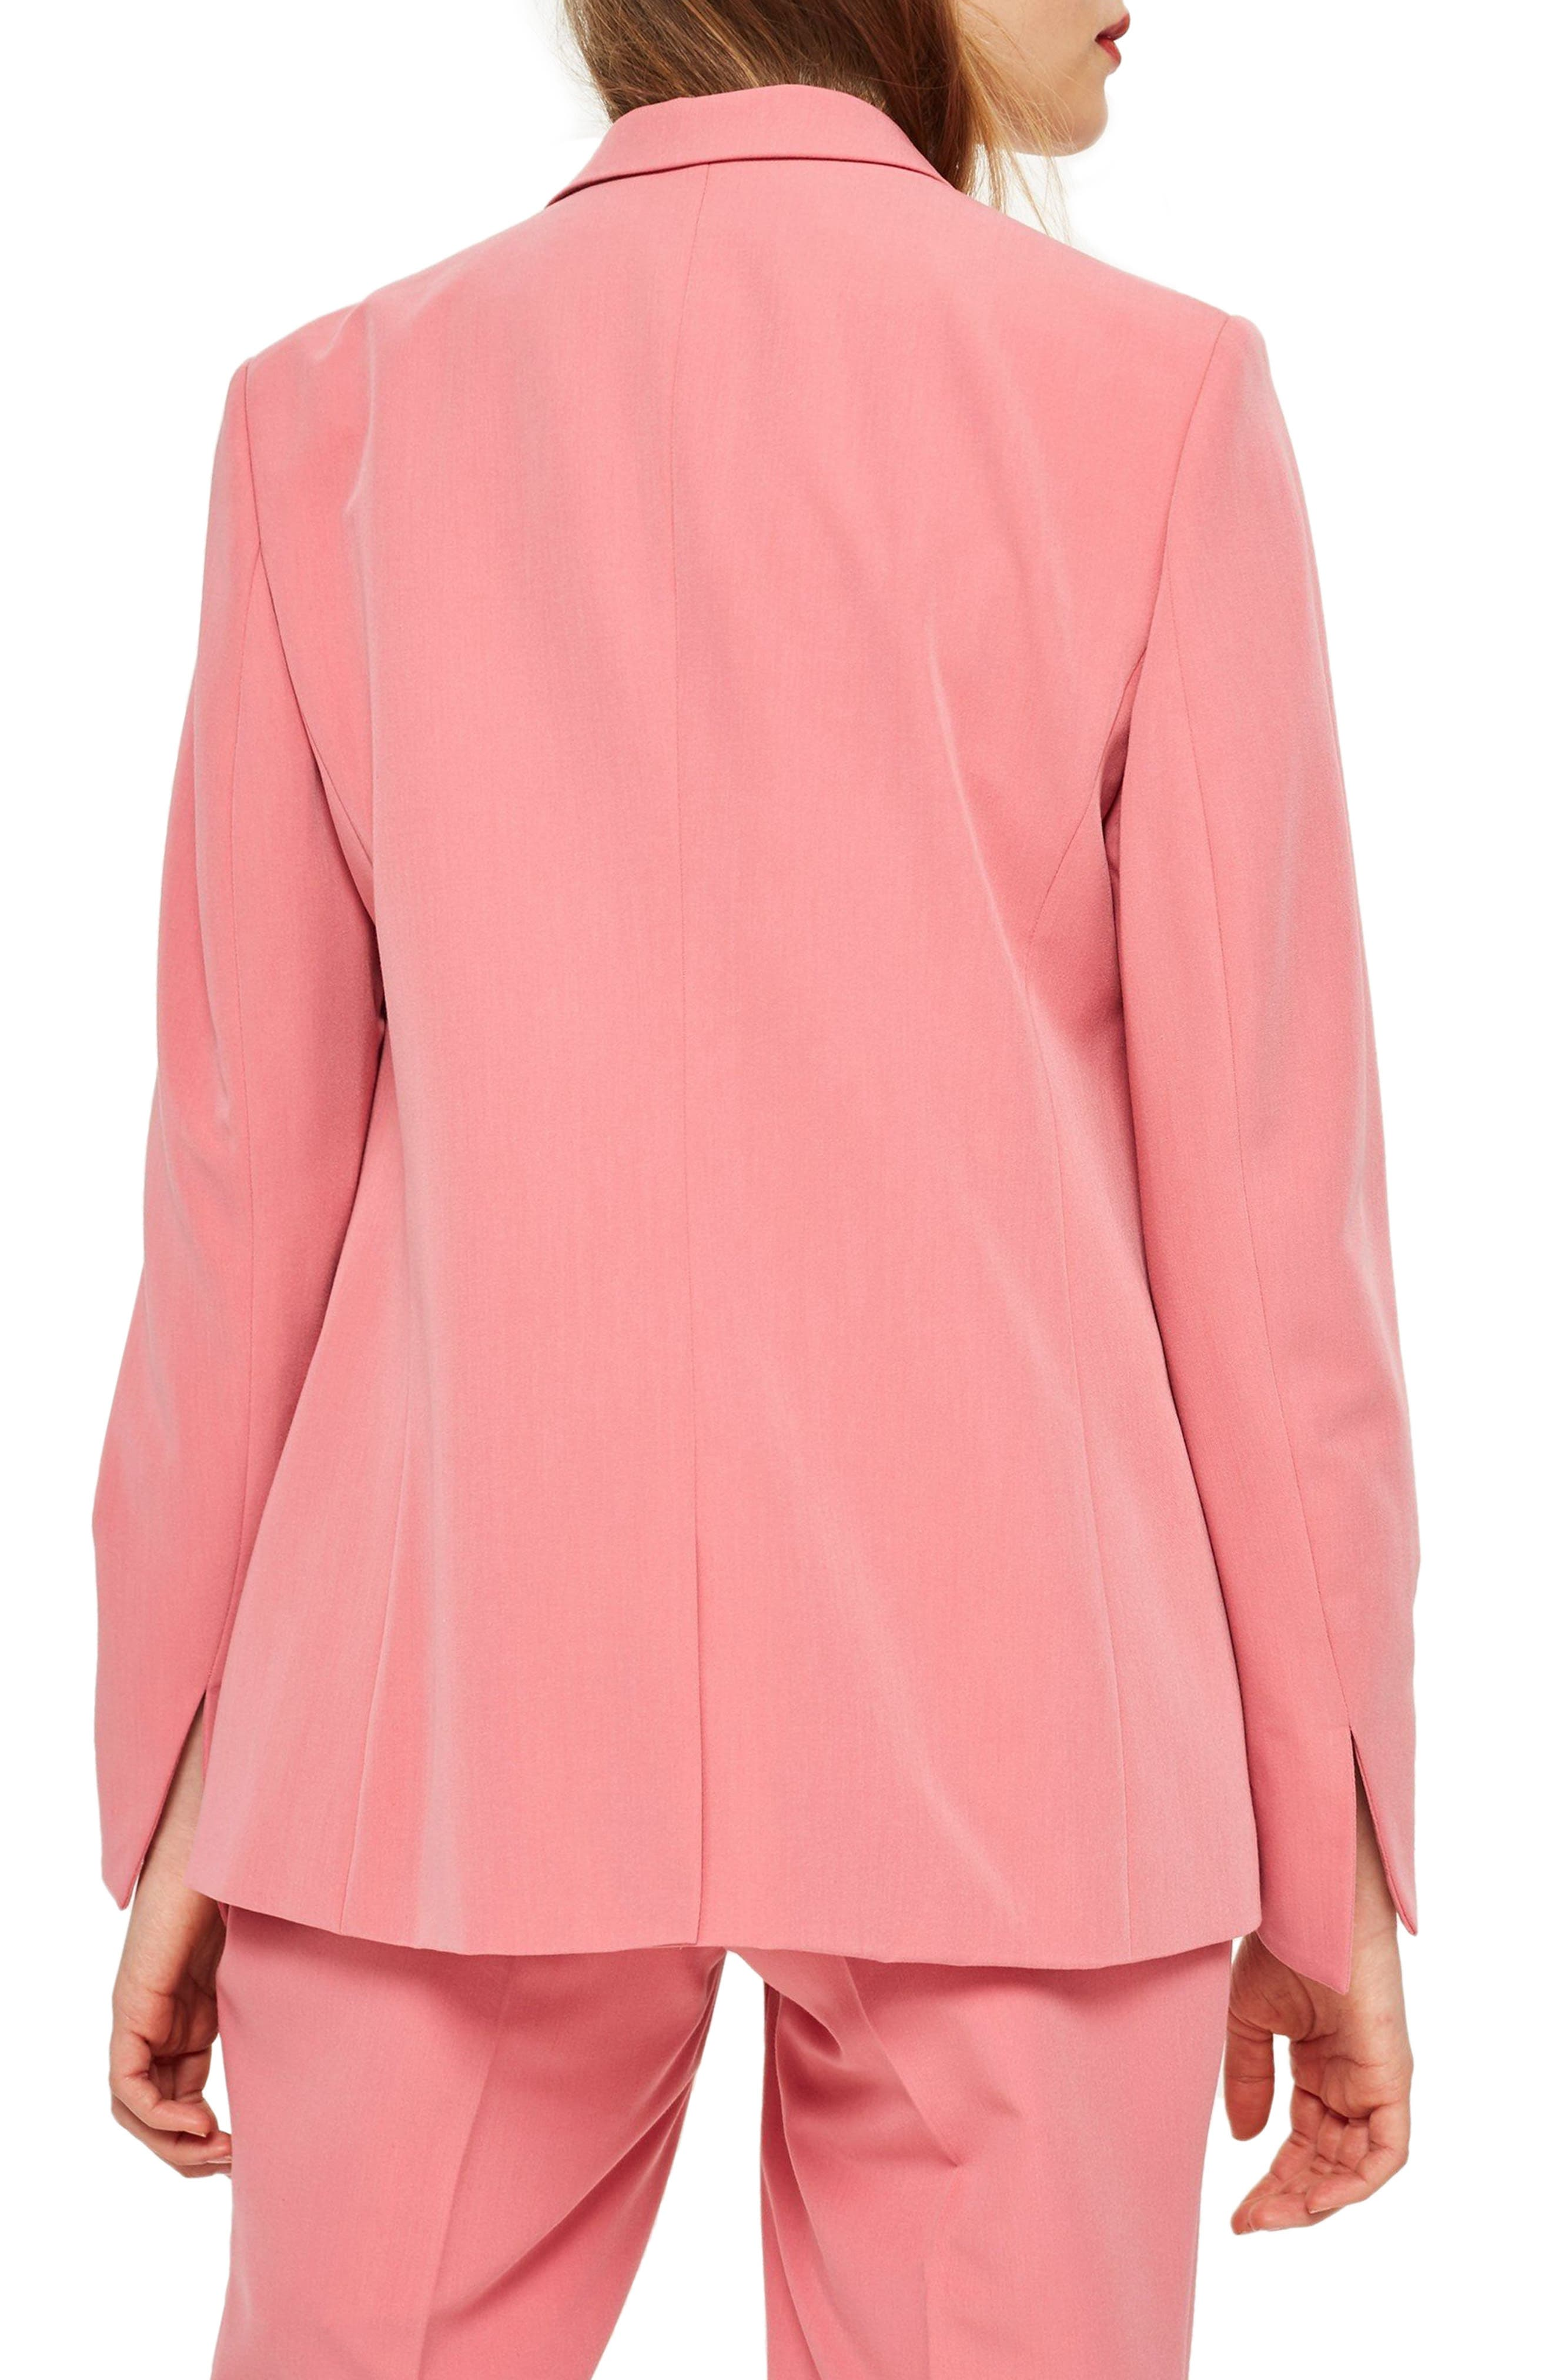 Longline Double Breasted Button Suit Jacket,                             Alternate thumbnail 2, color,                             650